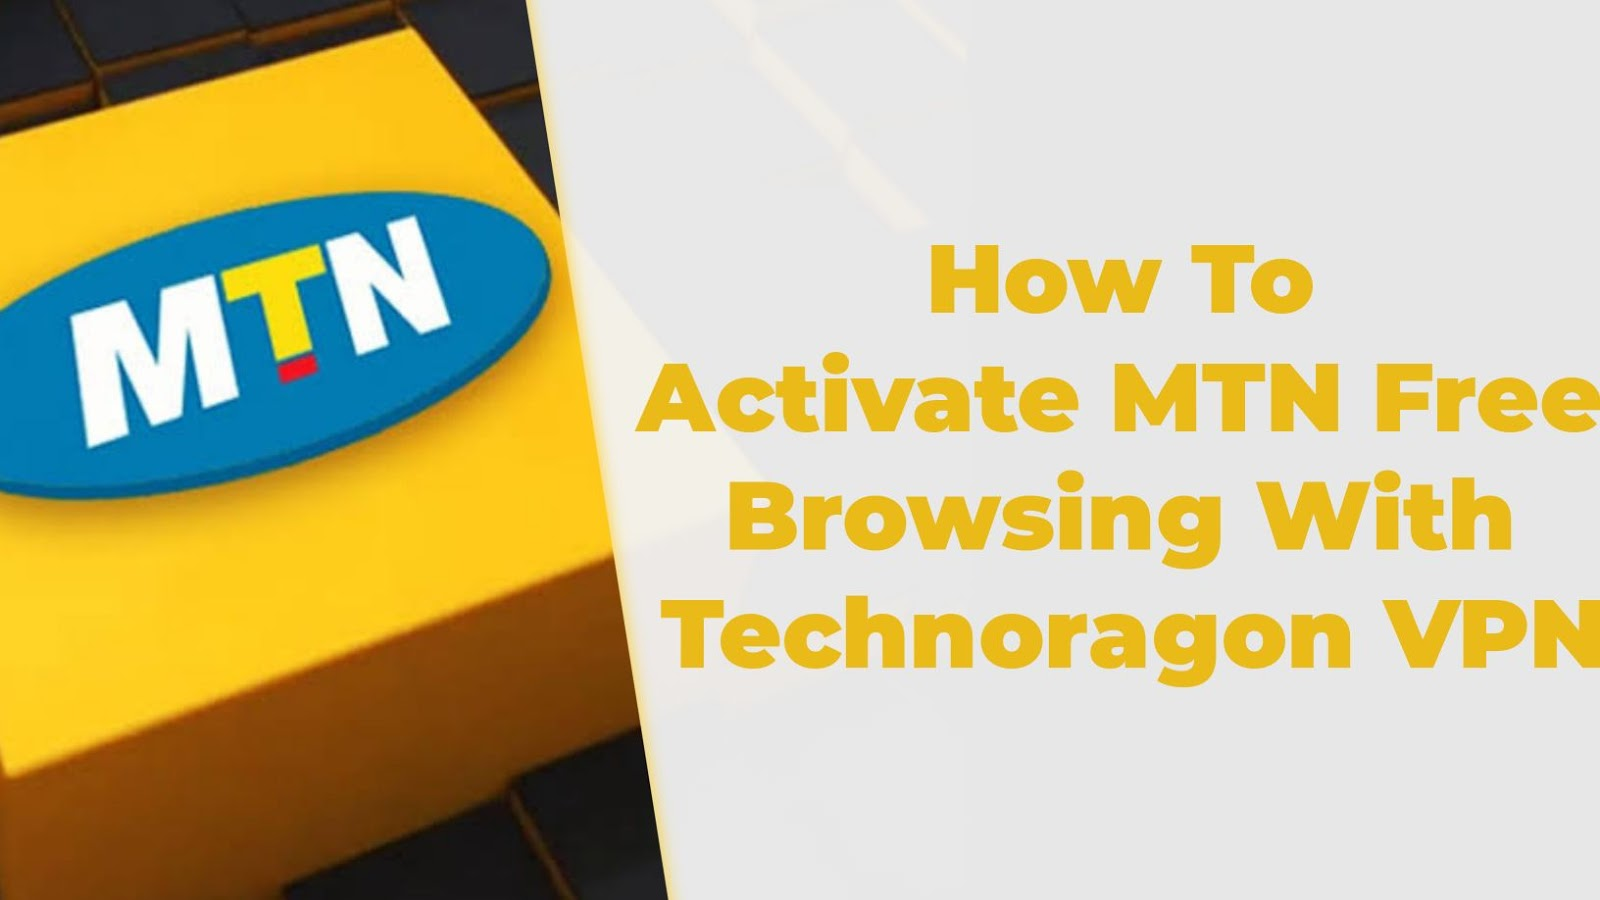 How To Activate MTN 0.0KB Free Browsing Cheat On Technoragon VPN